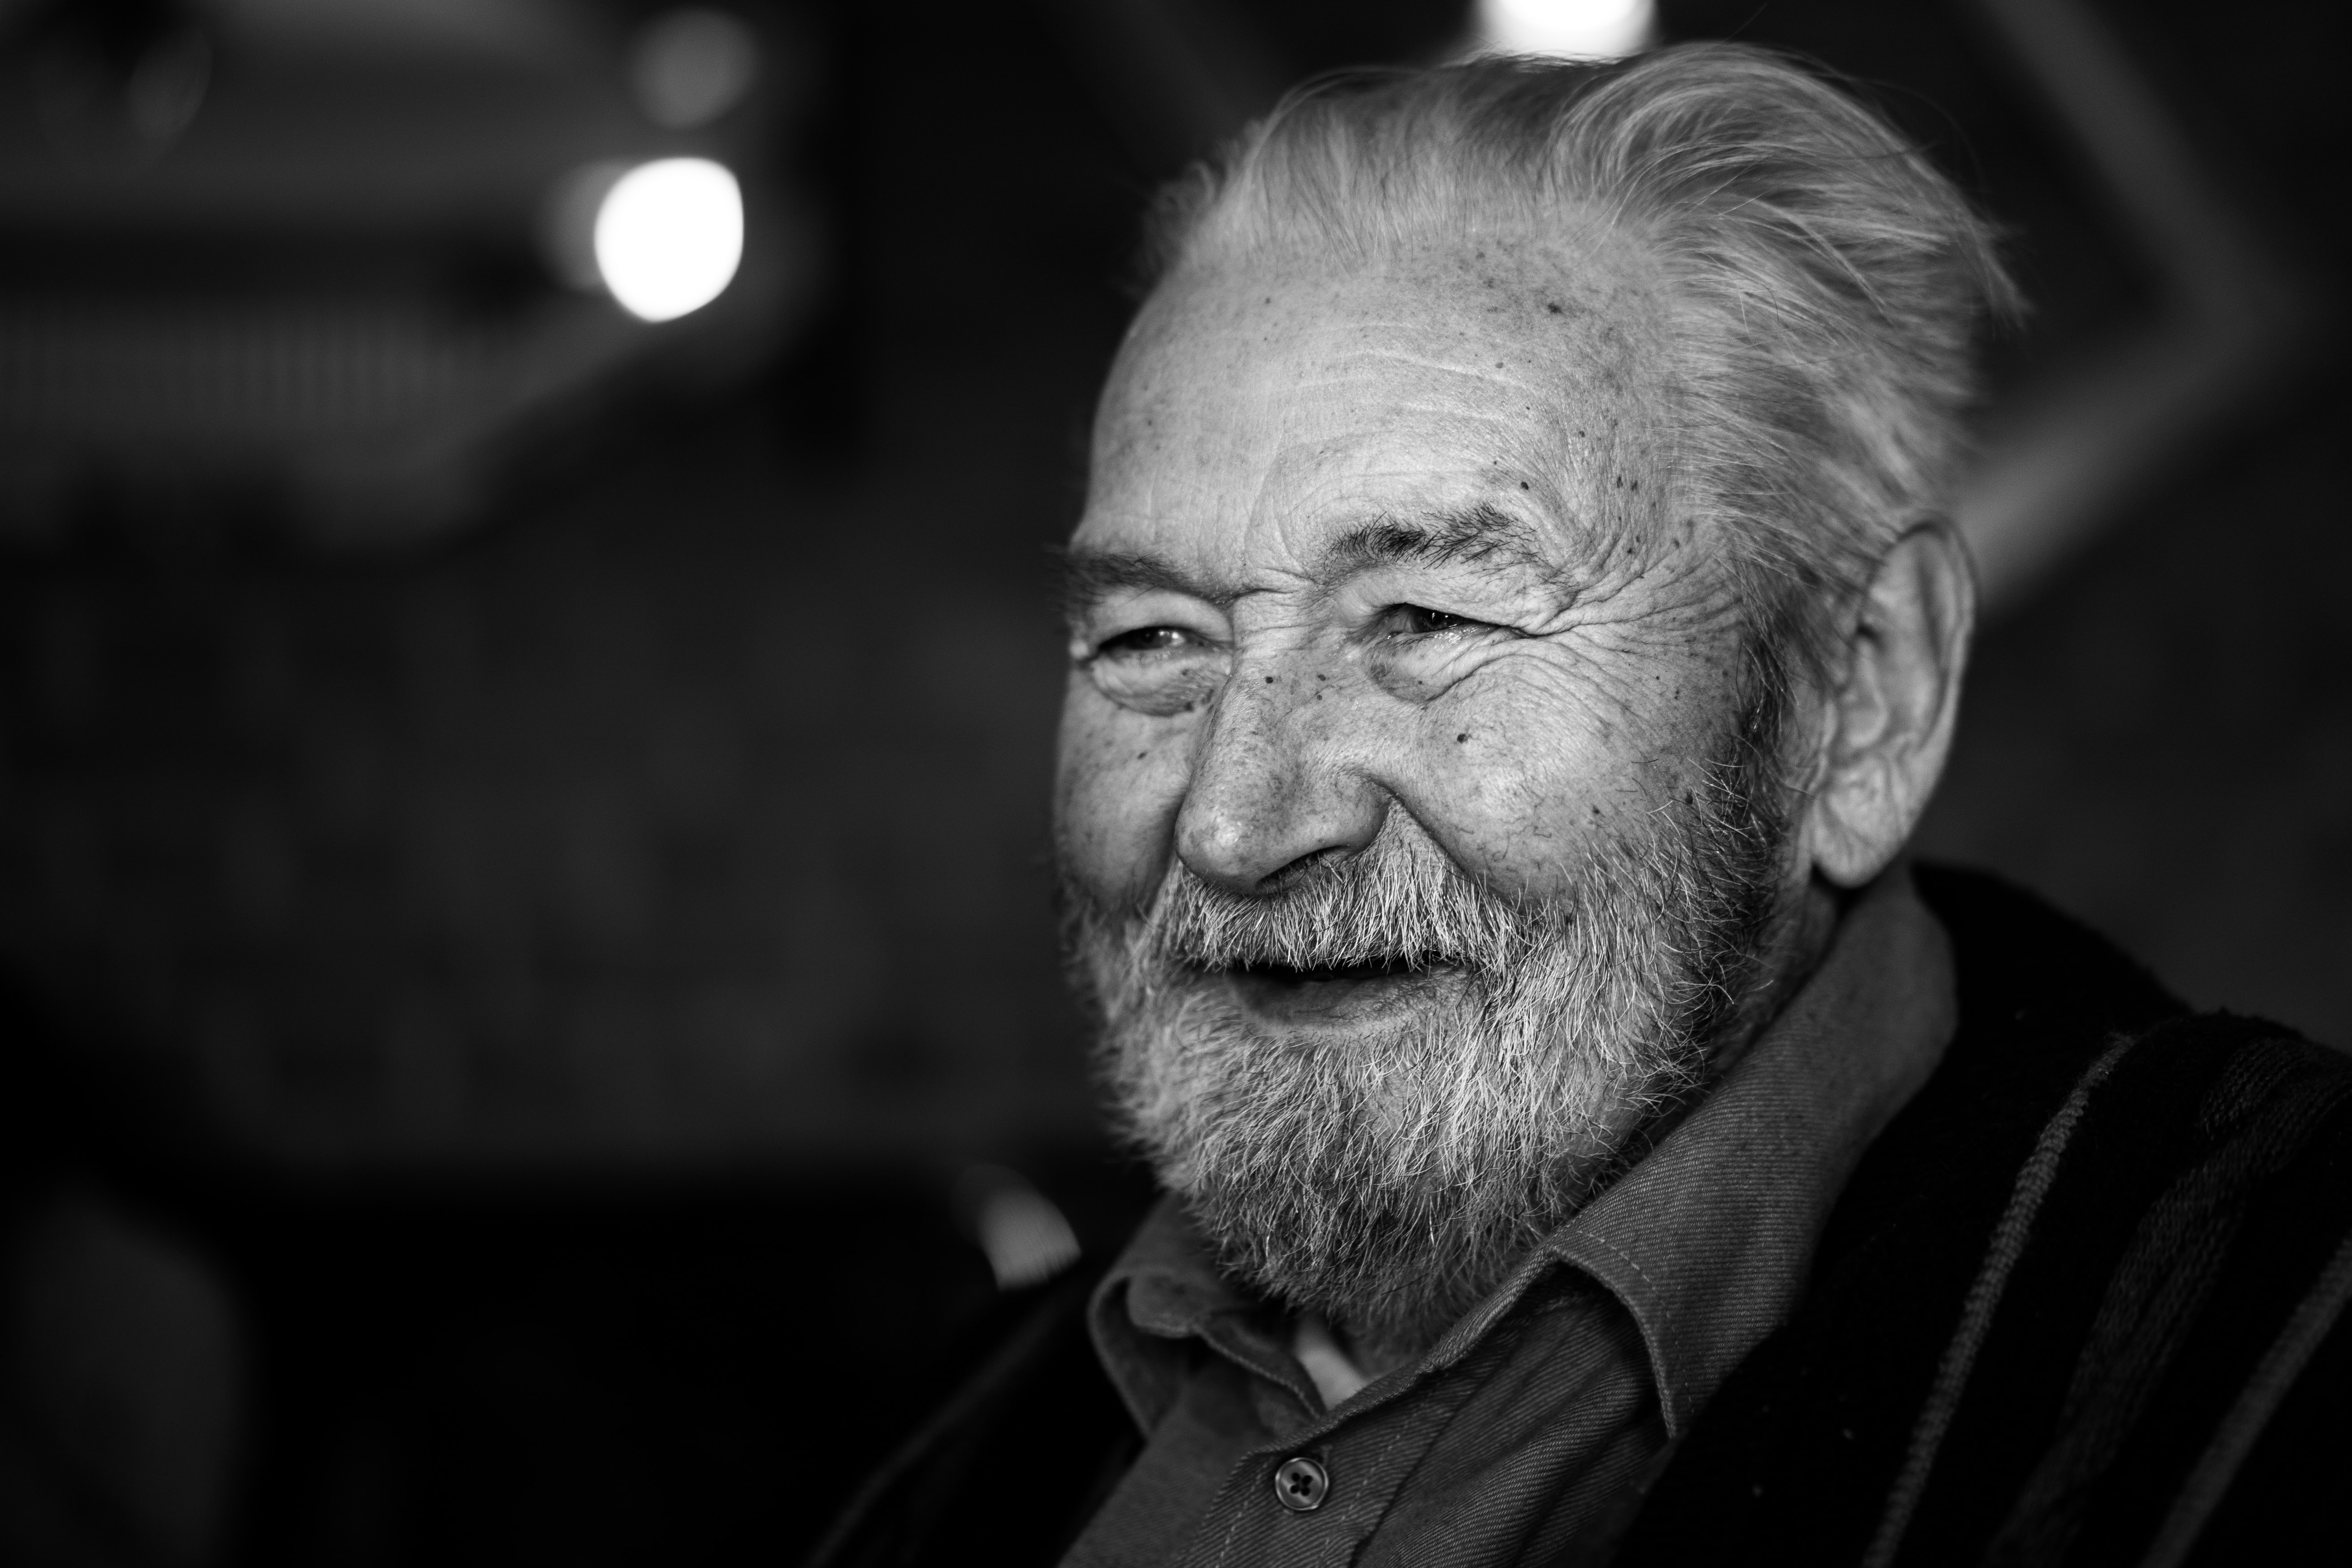 Black and white shot of old man with beard and grey hair smiling